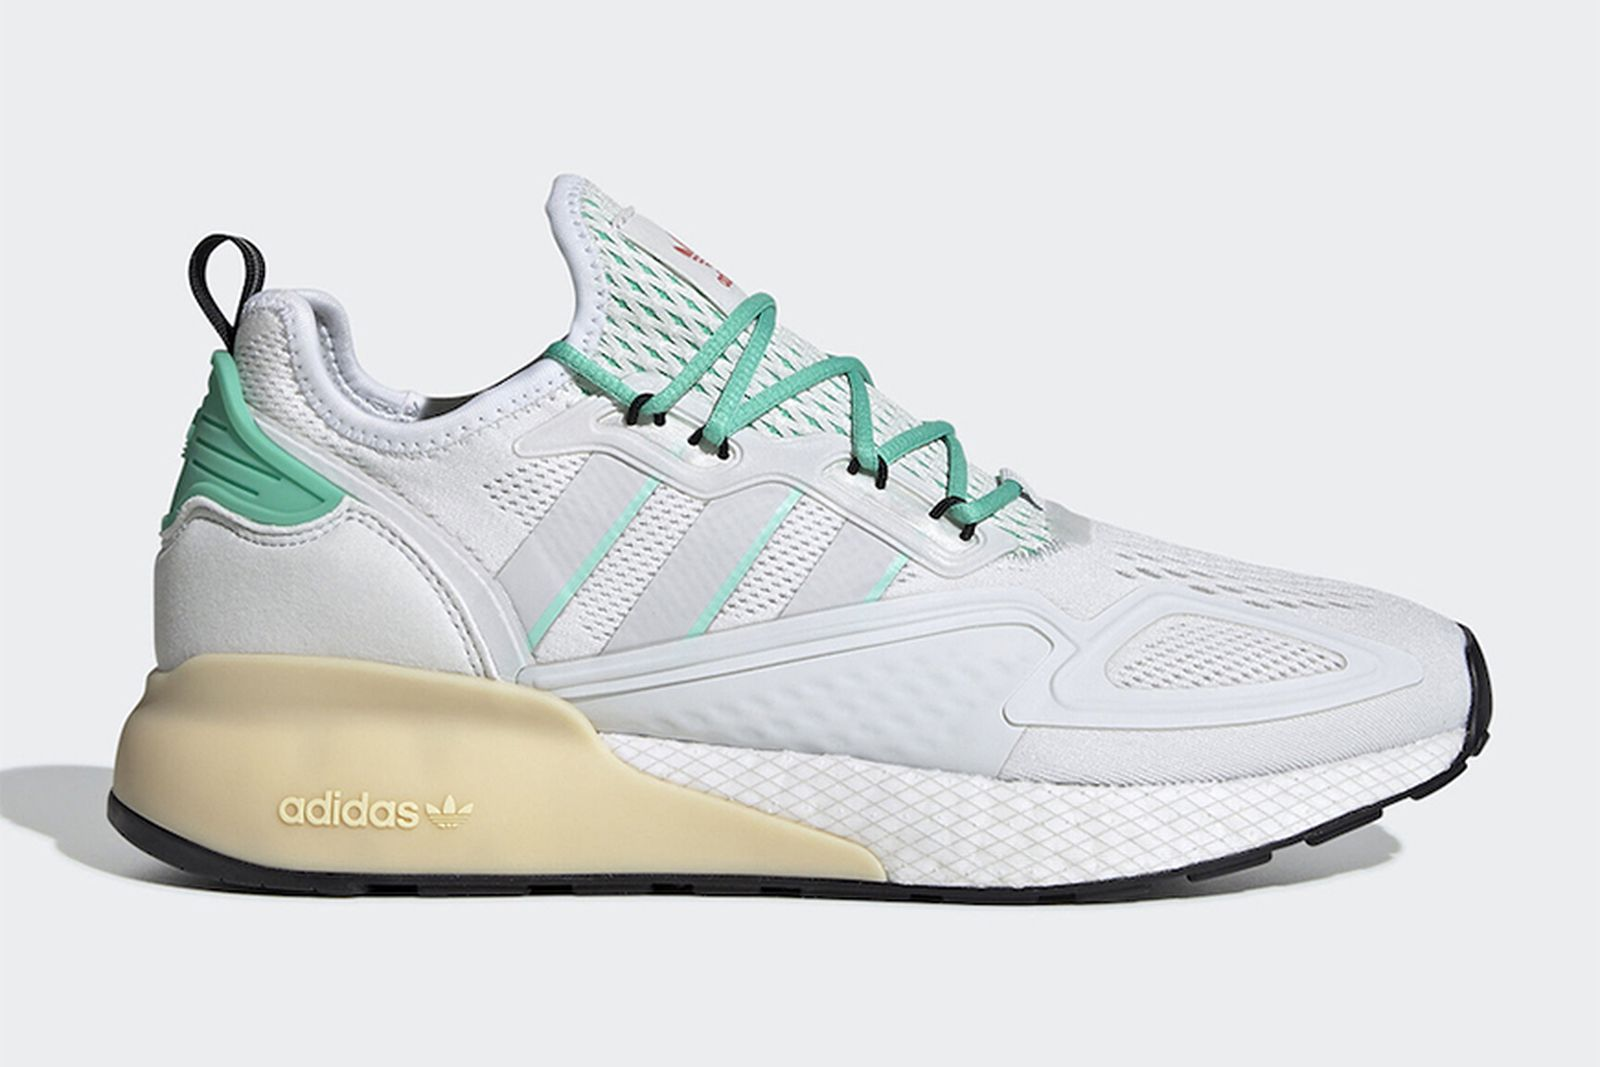 adidas-zx-2k-boost-release-date-price-01